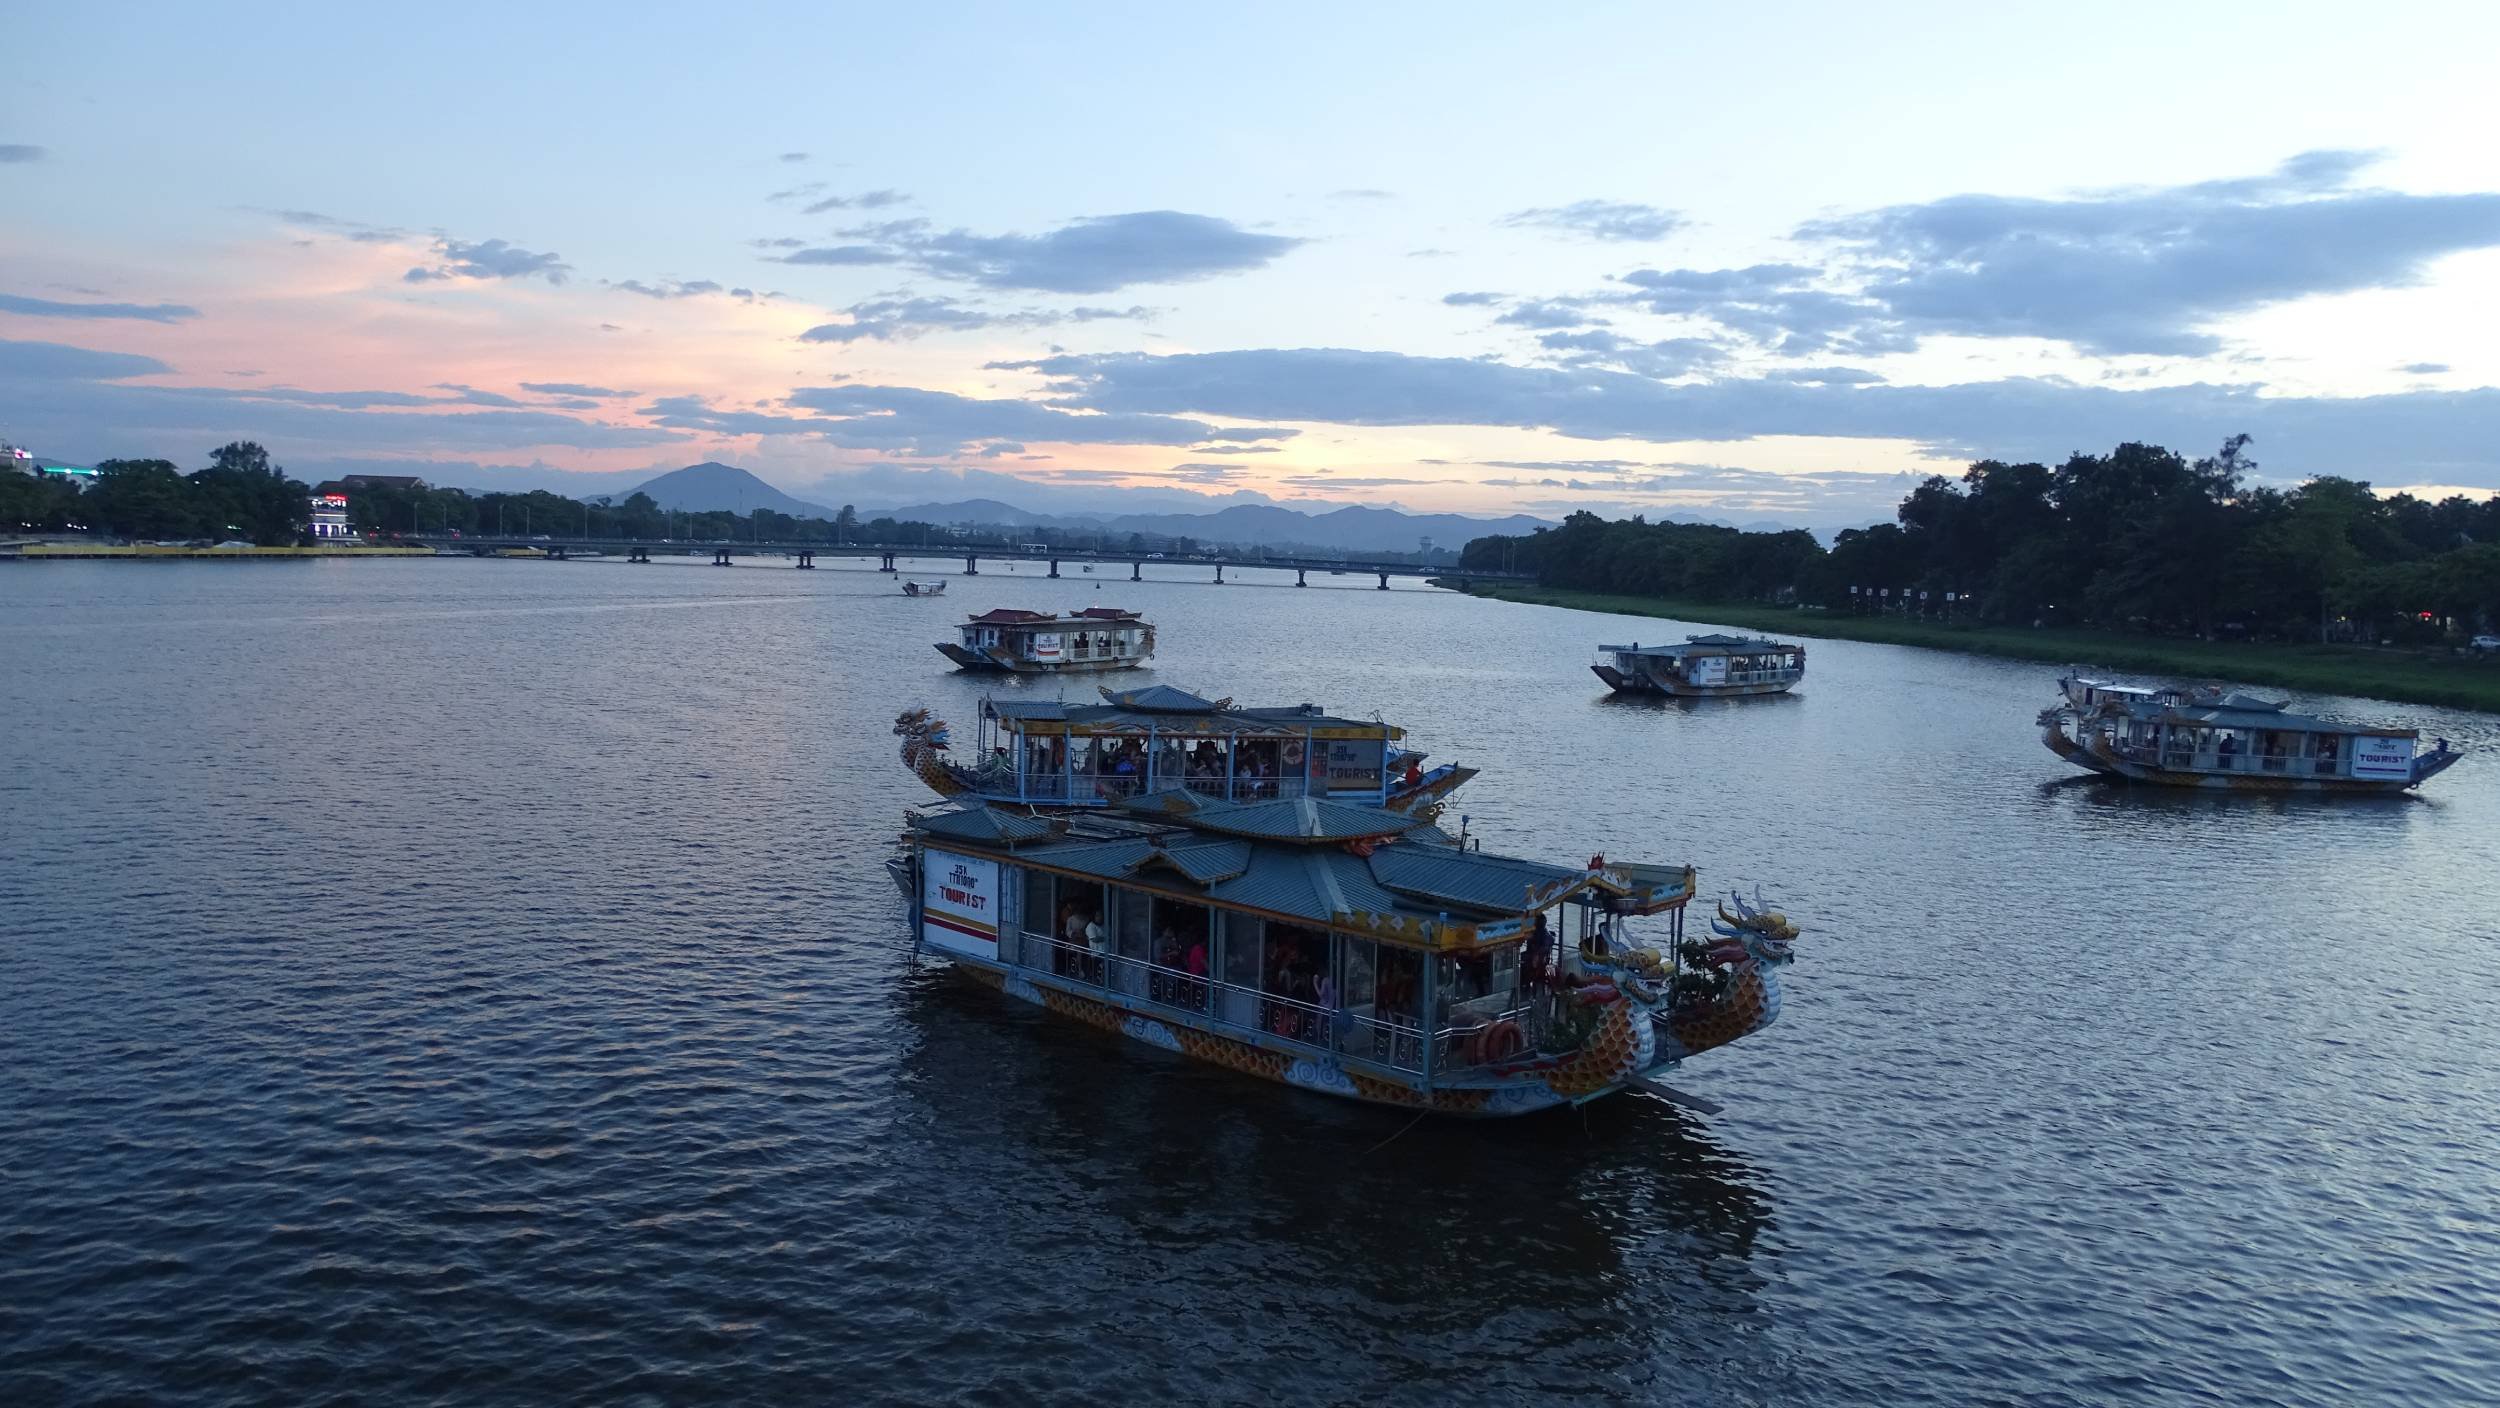 Tourists boats on the Perfume River in Hue around sunset